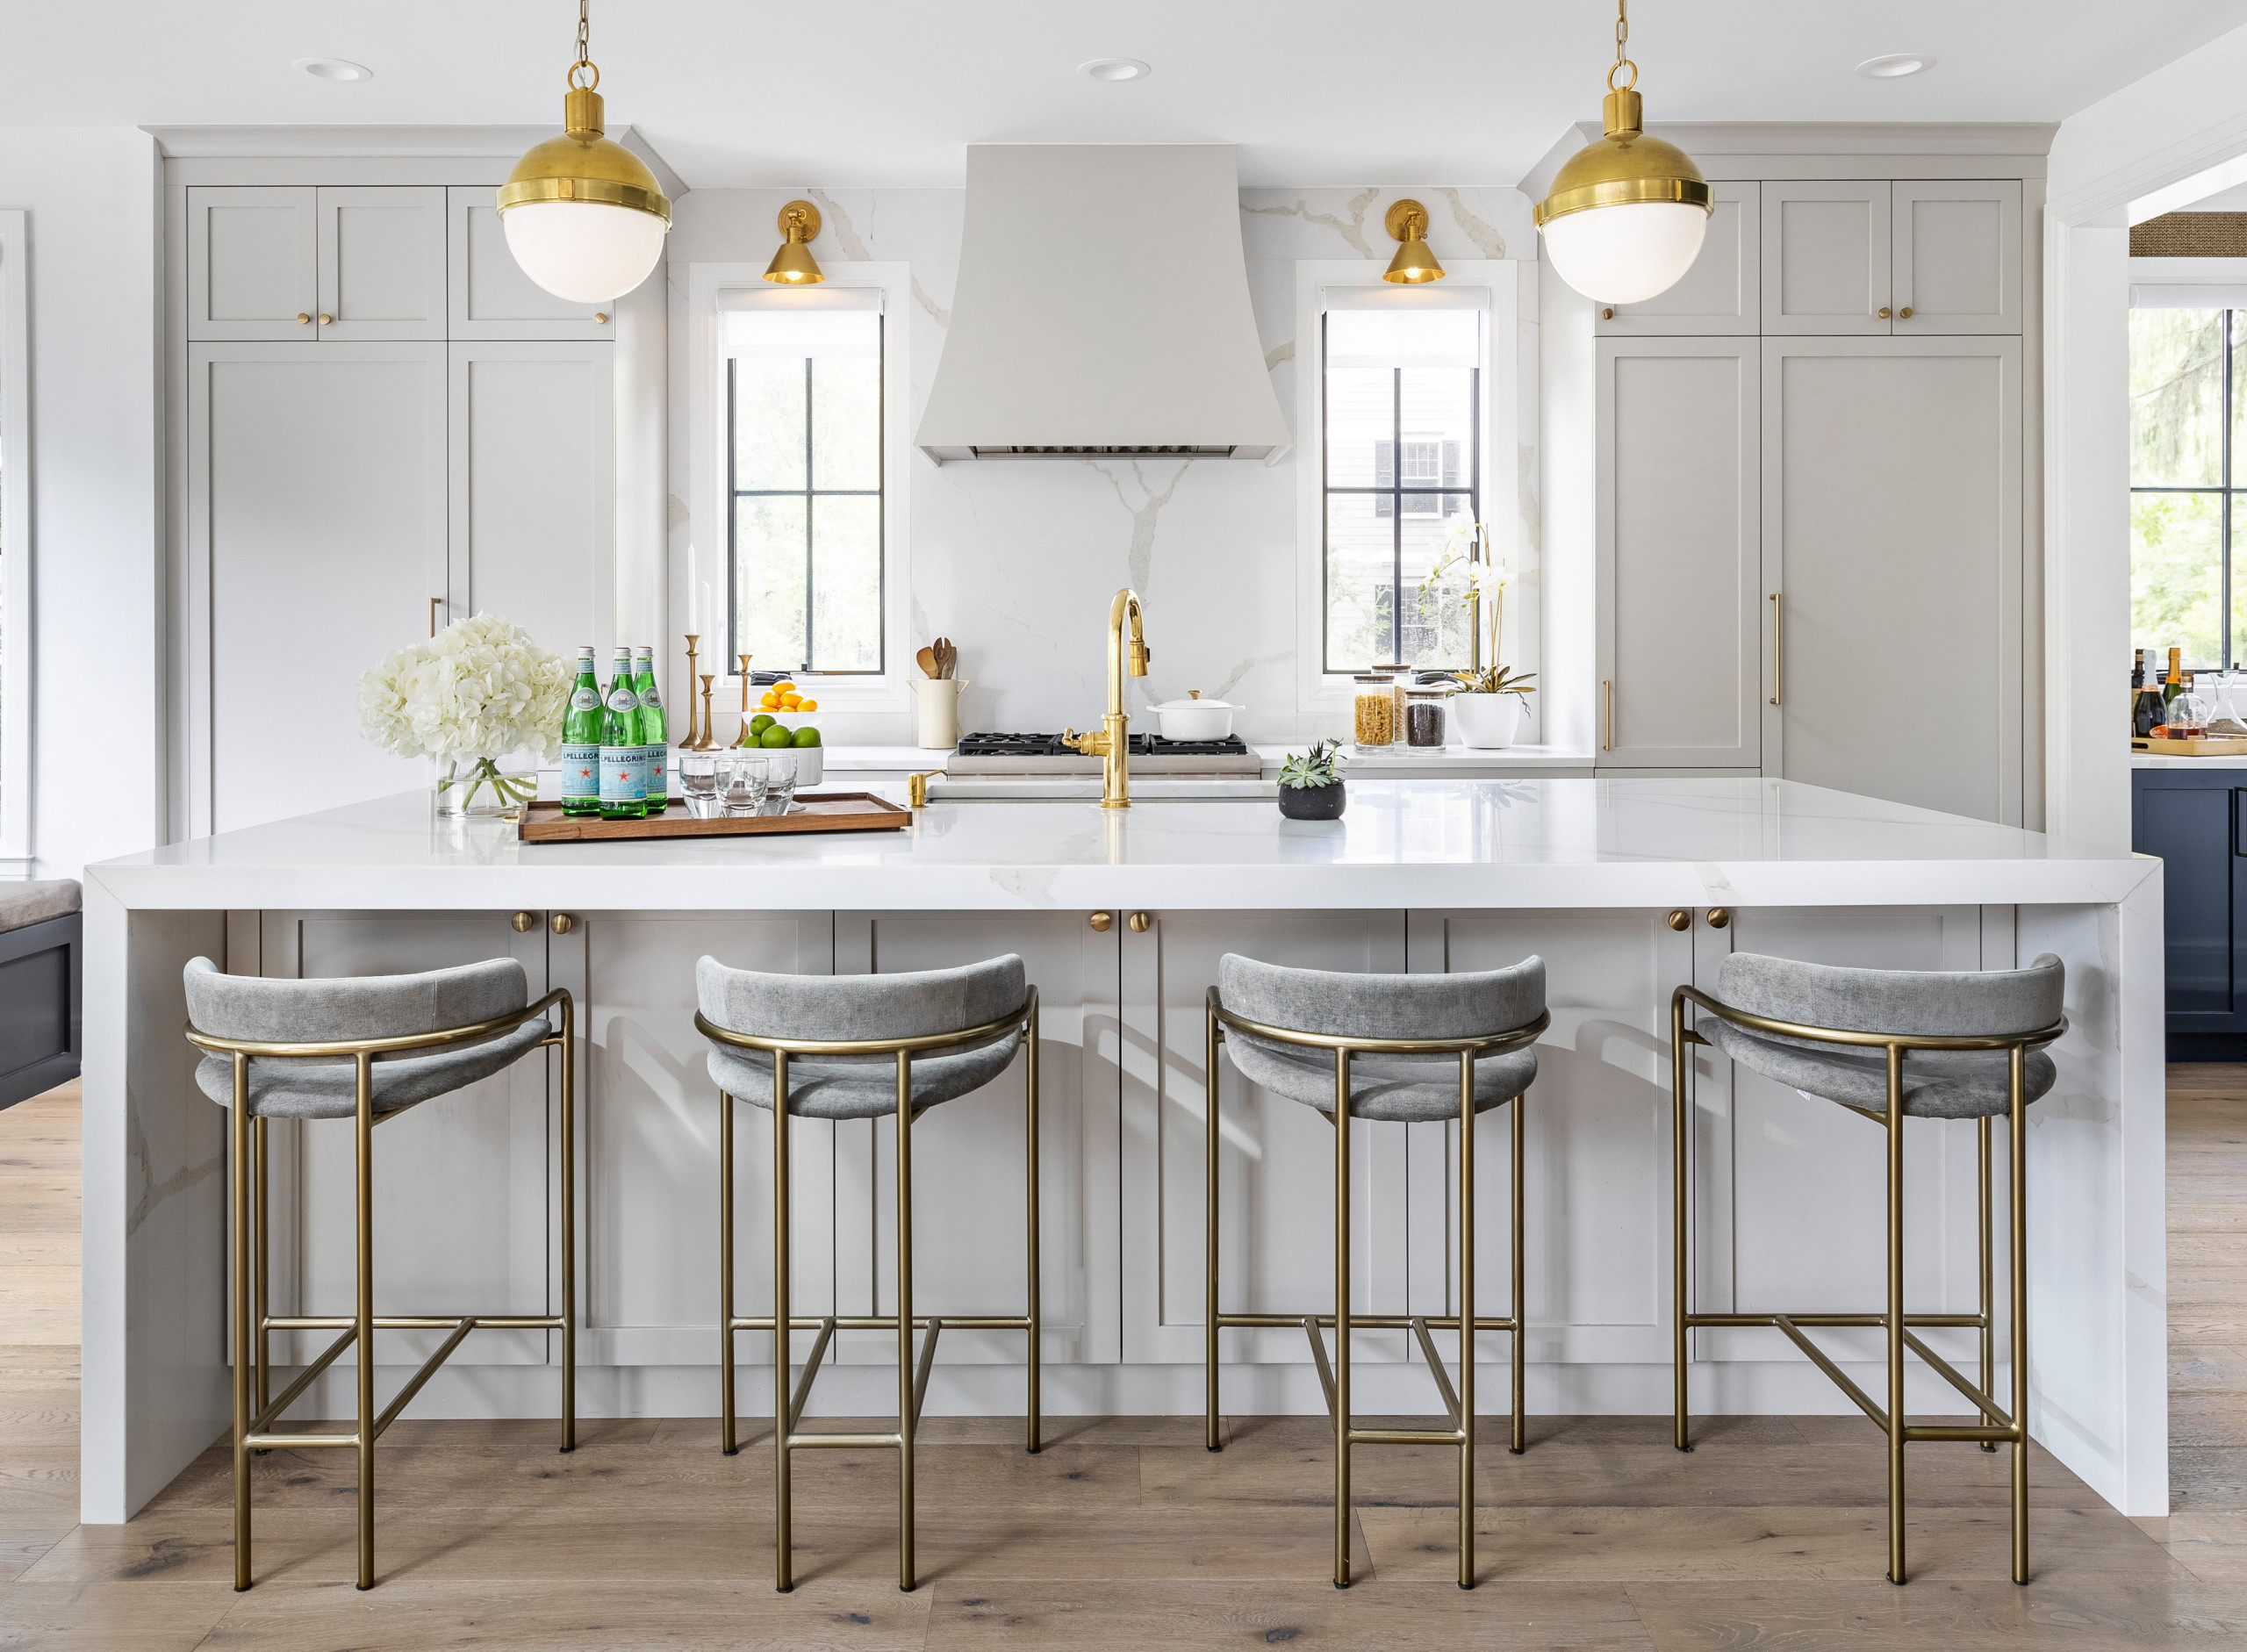 This stylish, family friendly kitchen is also an entertainer's dream! This young family desired a bright, spacious kitchen that would function just as well for the family of 4 everyday, as it would fo